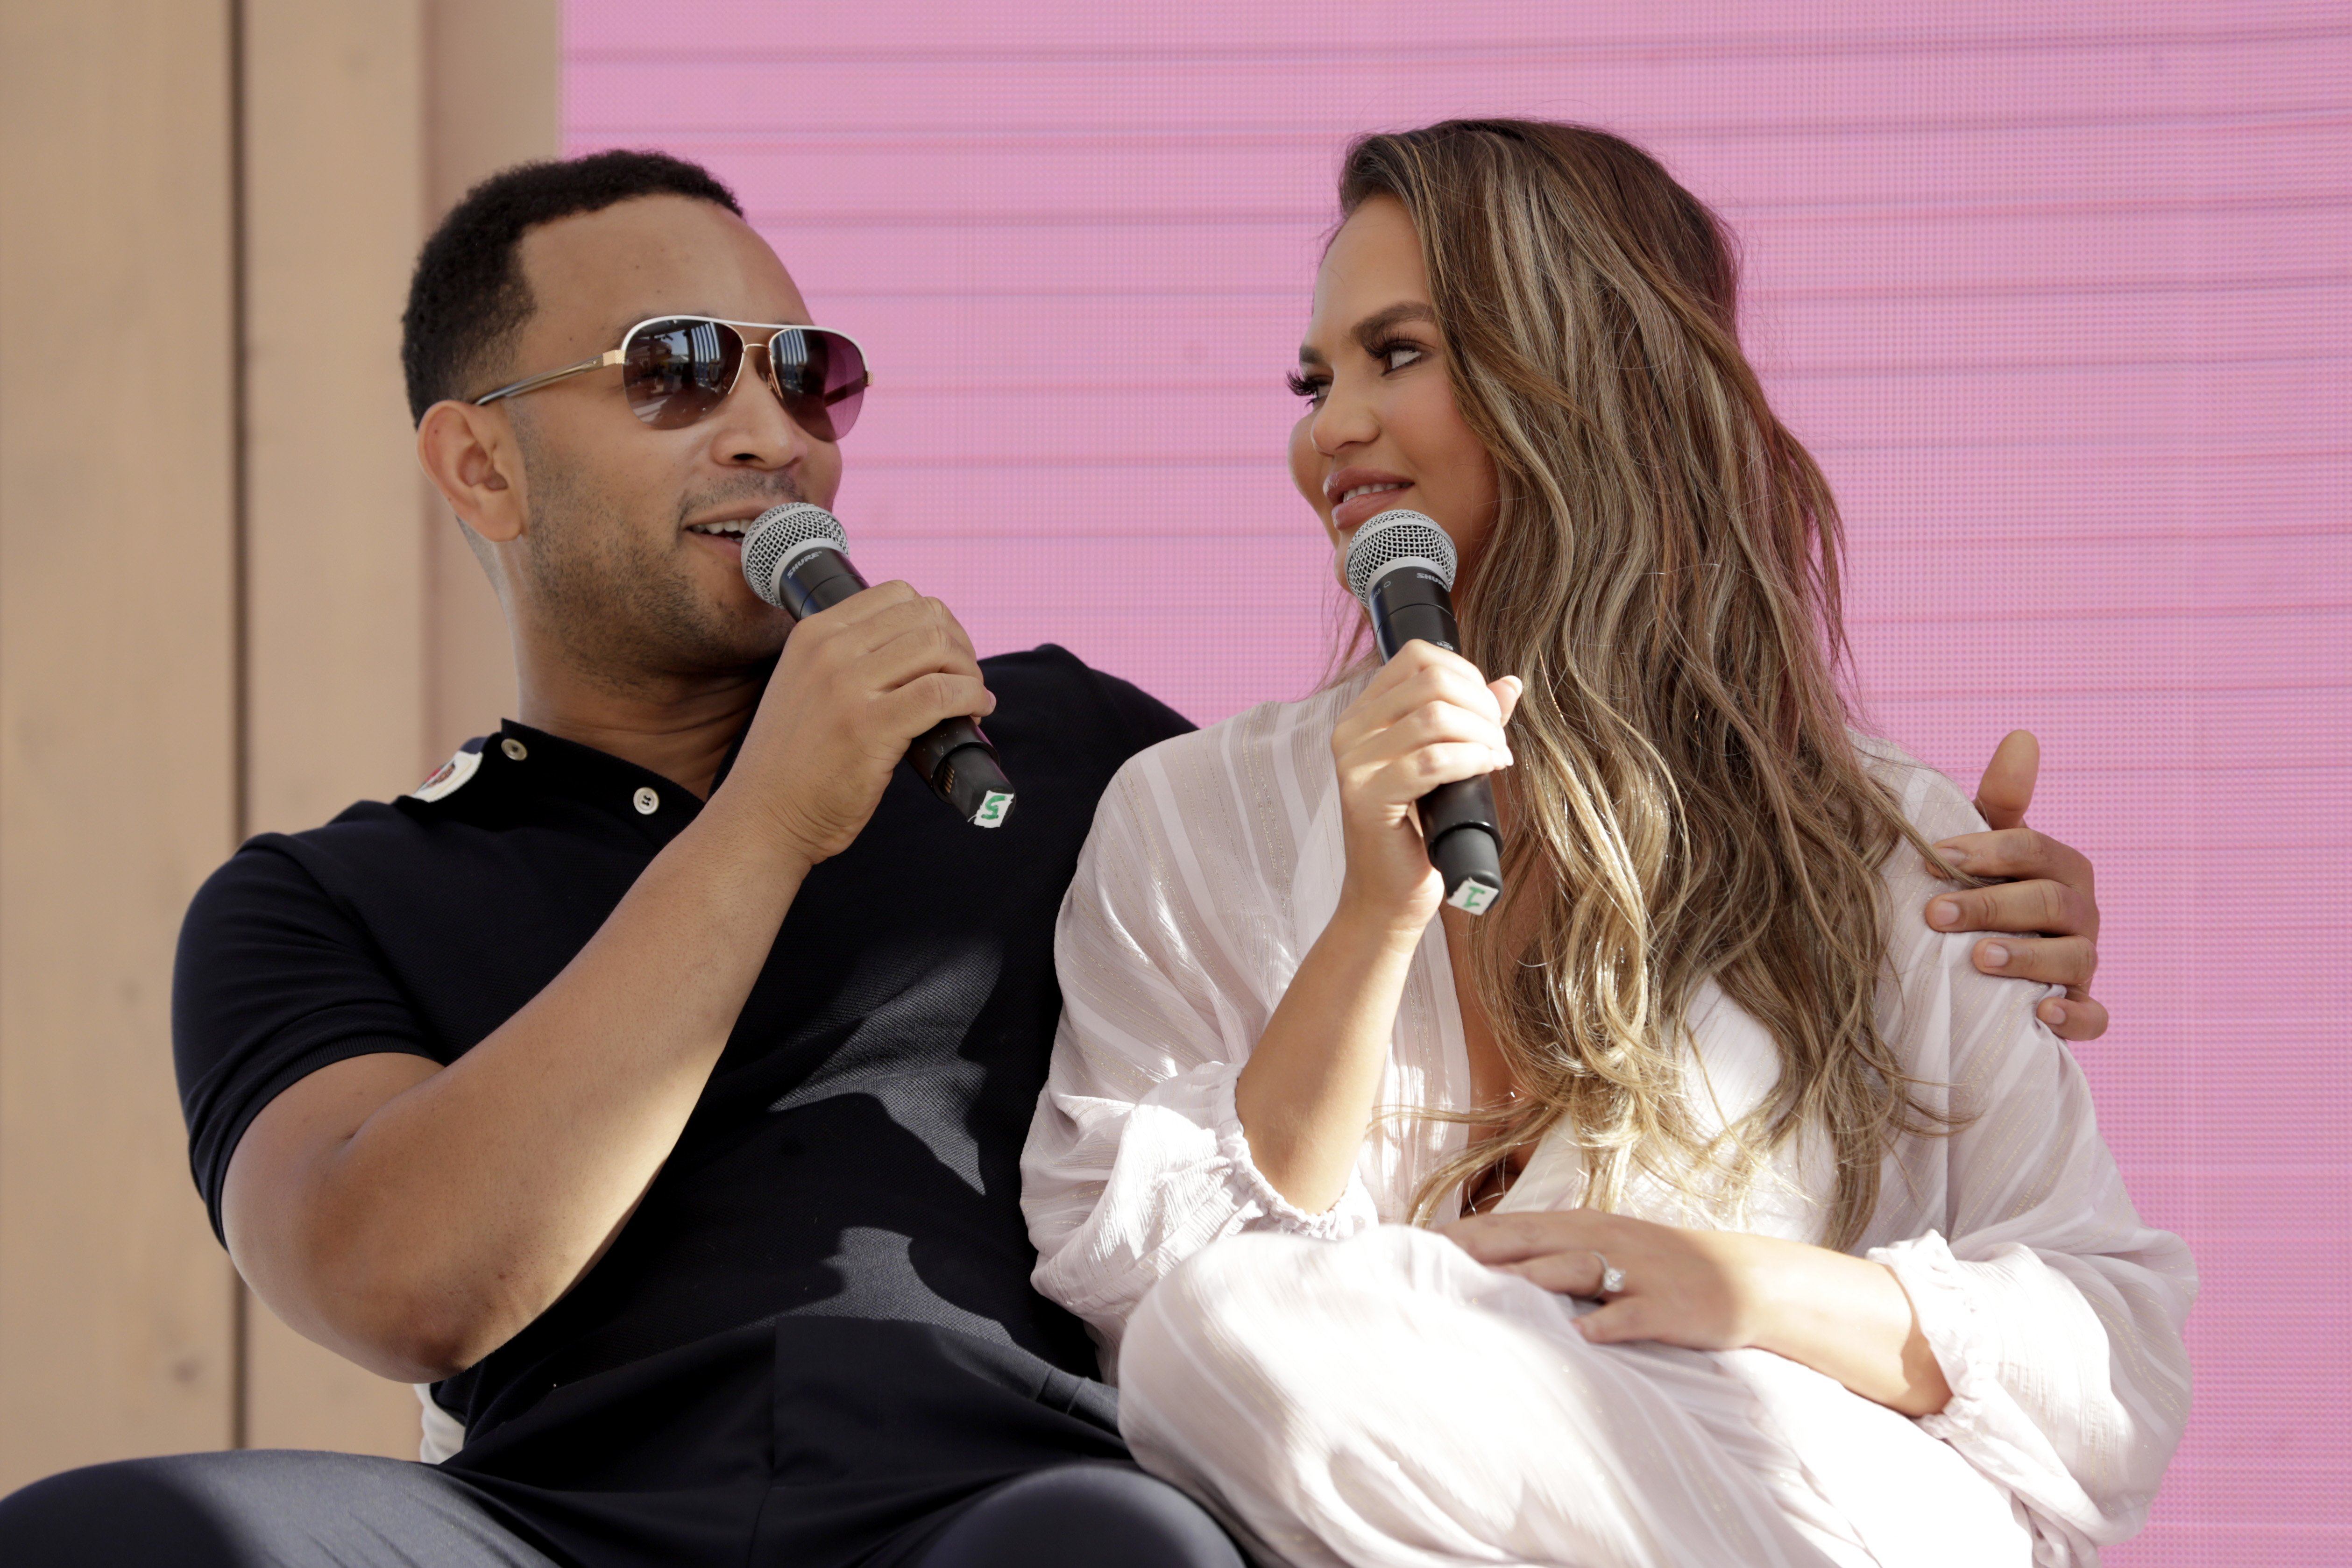 Chrissy Teigen and John Legend go behind the Tweets at #TwitterBeach at Cannes Lions on June 18, 2019 in Cannes, France | Photo: Getty Images